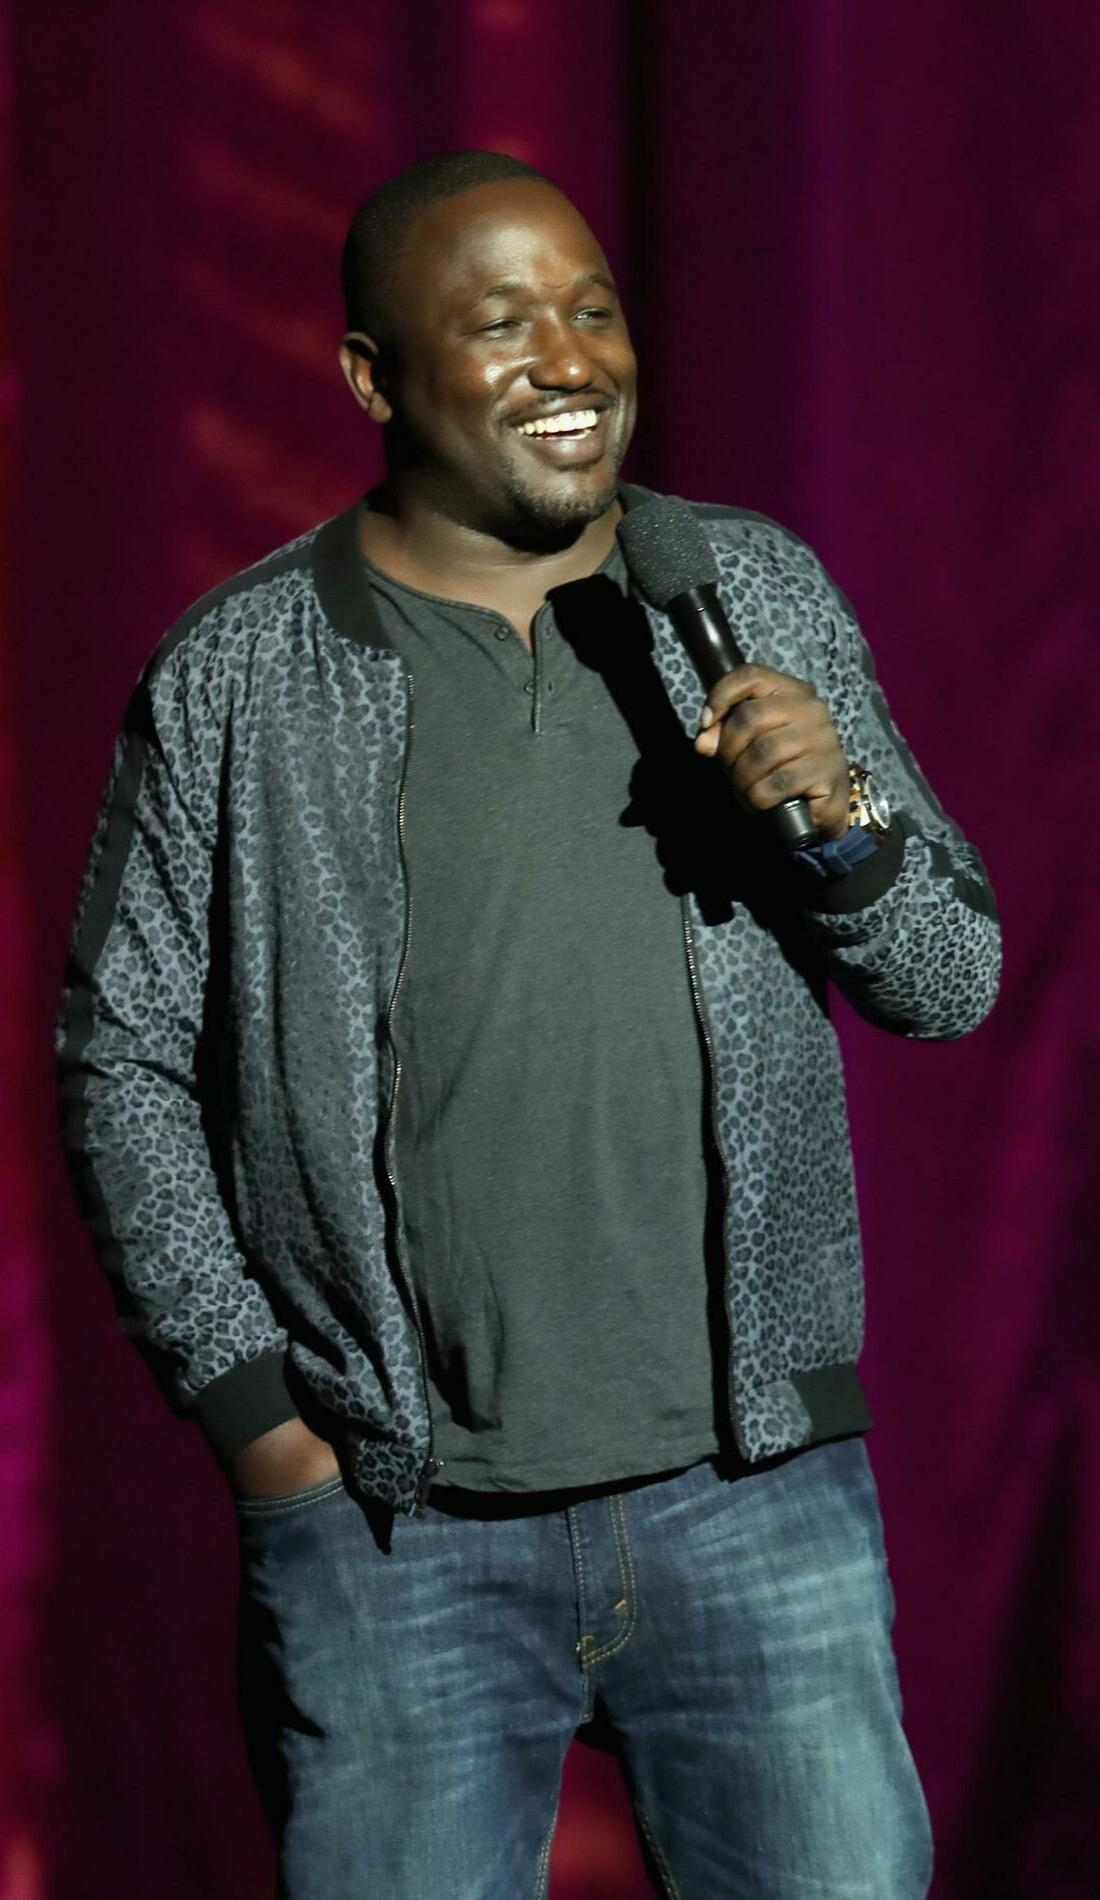 A Hannibal Buress live event